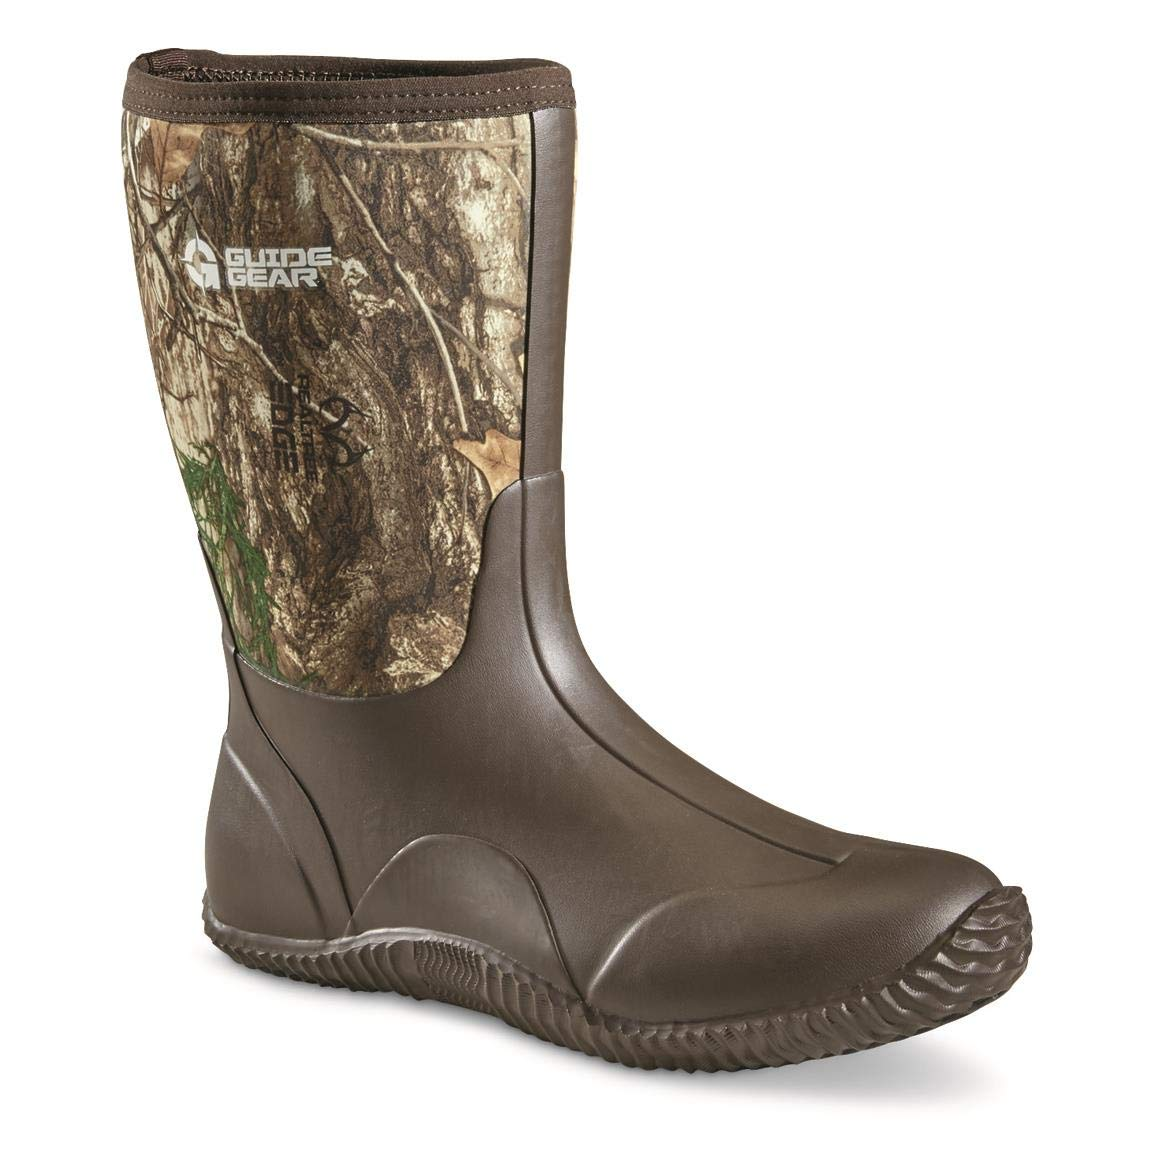 Guide Gear Men's Mid Camo Bogger Rubber Boots, Realtree Edge, 12D (Medium) by Guide Gear